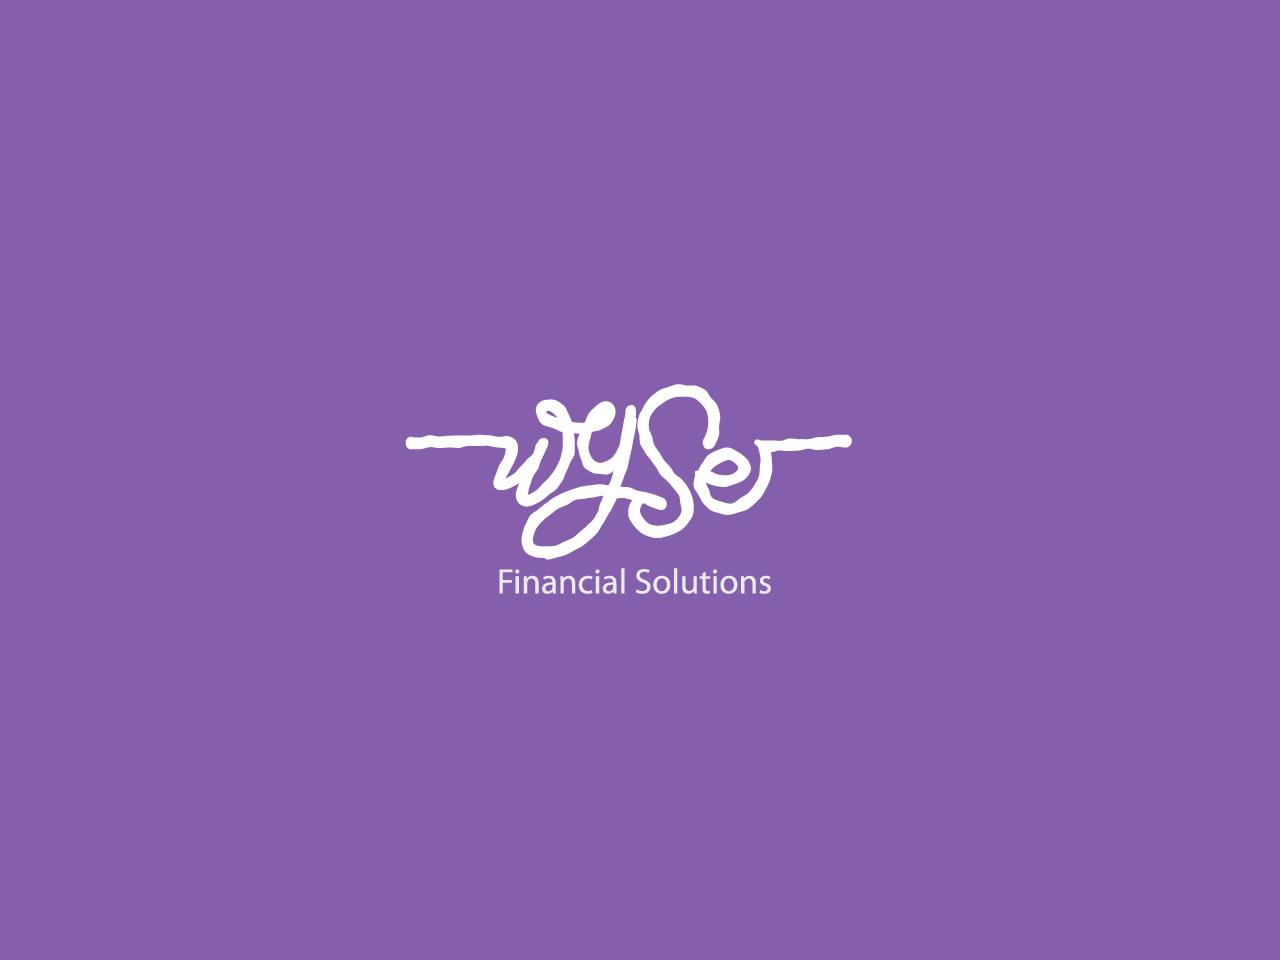 Logo Design by jpbituin - Entry No. 83 in the Logo Design Contest Fun Logo Design for Wyse Financial Solutions.